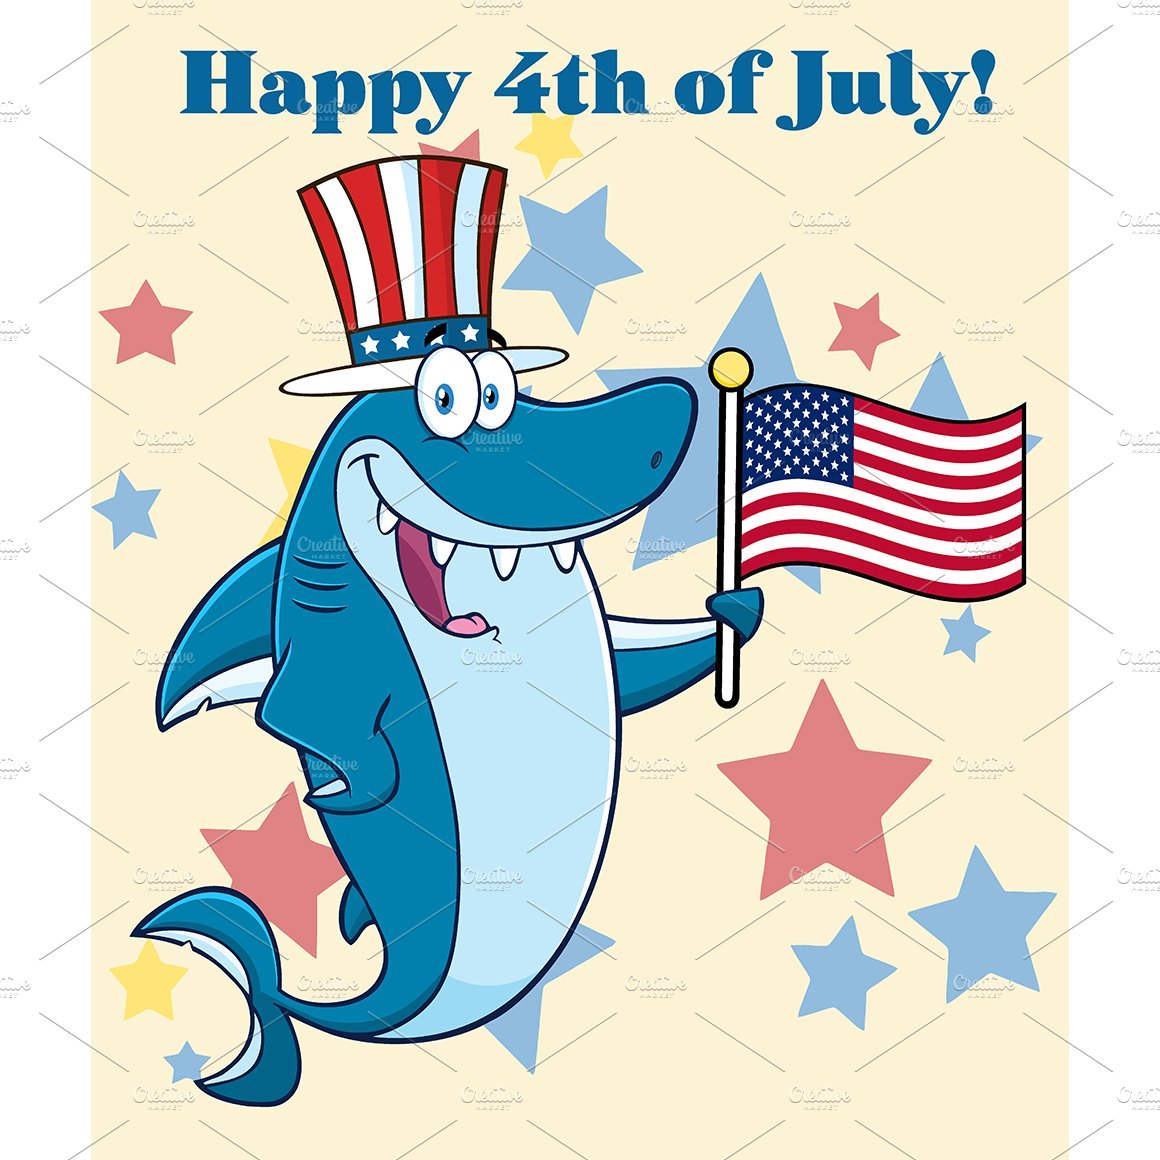 Shark Holding An American Flag ~ Illustrations ~ Creative Market 363327f1a7fb